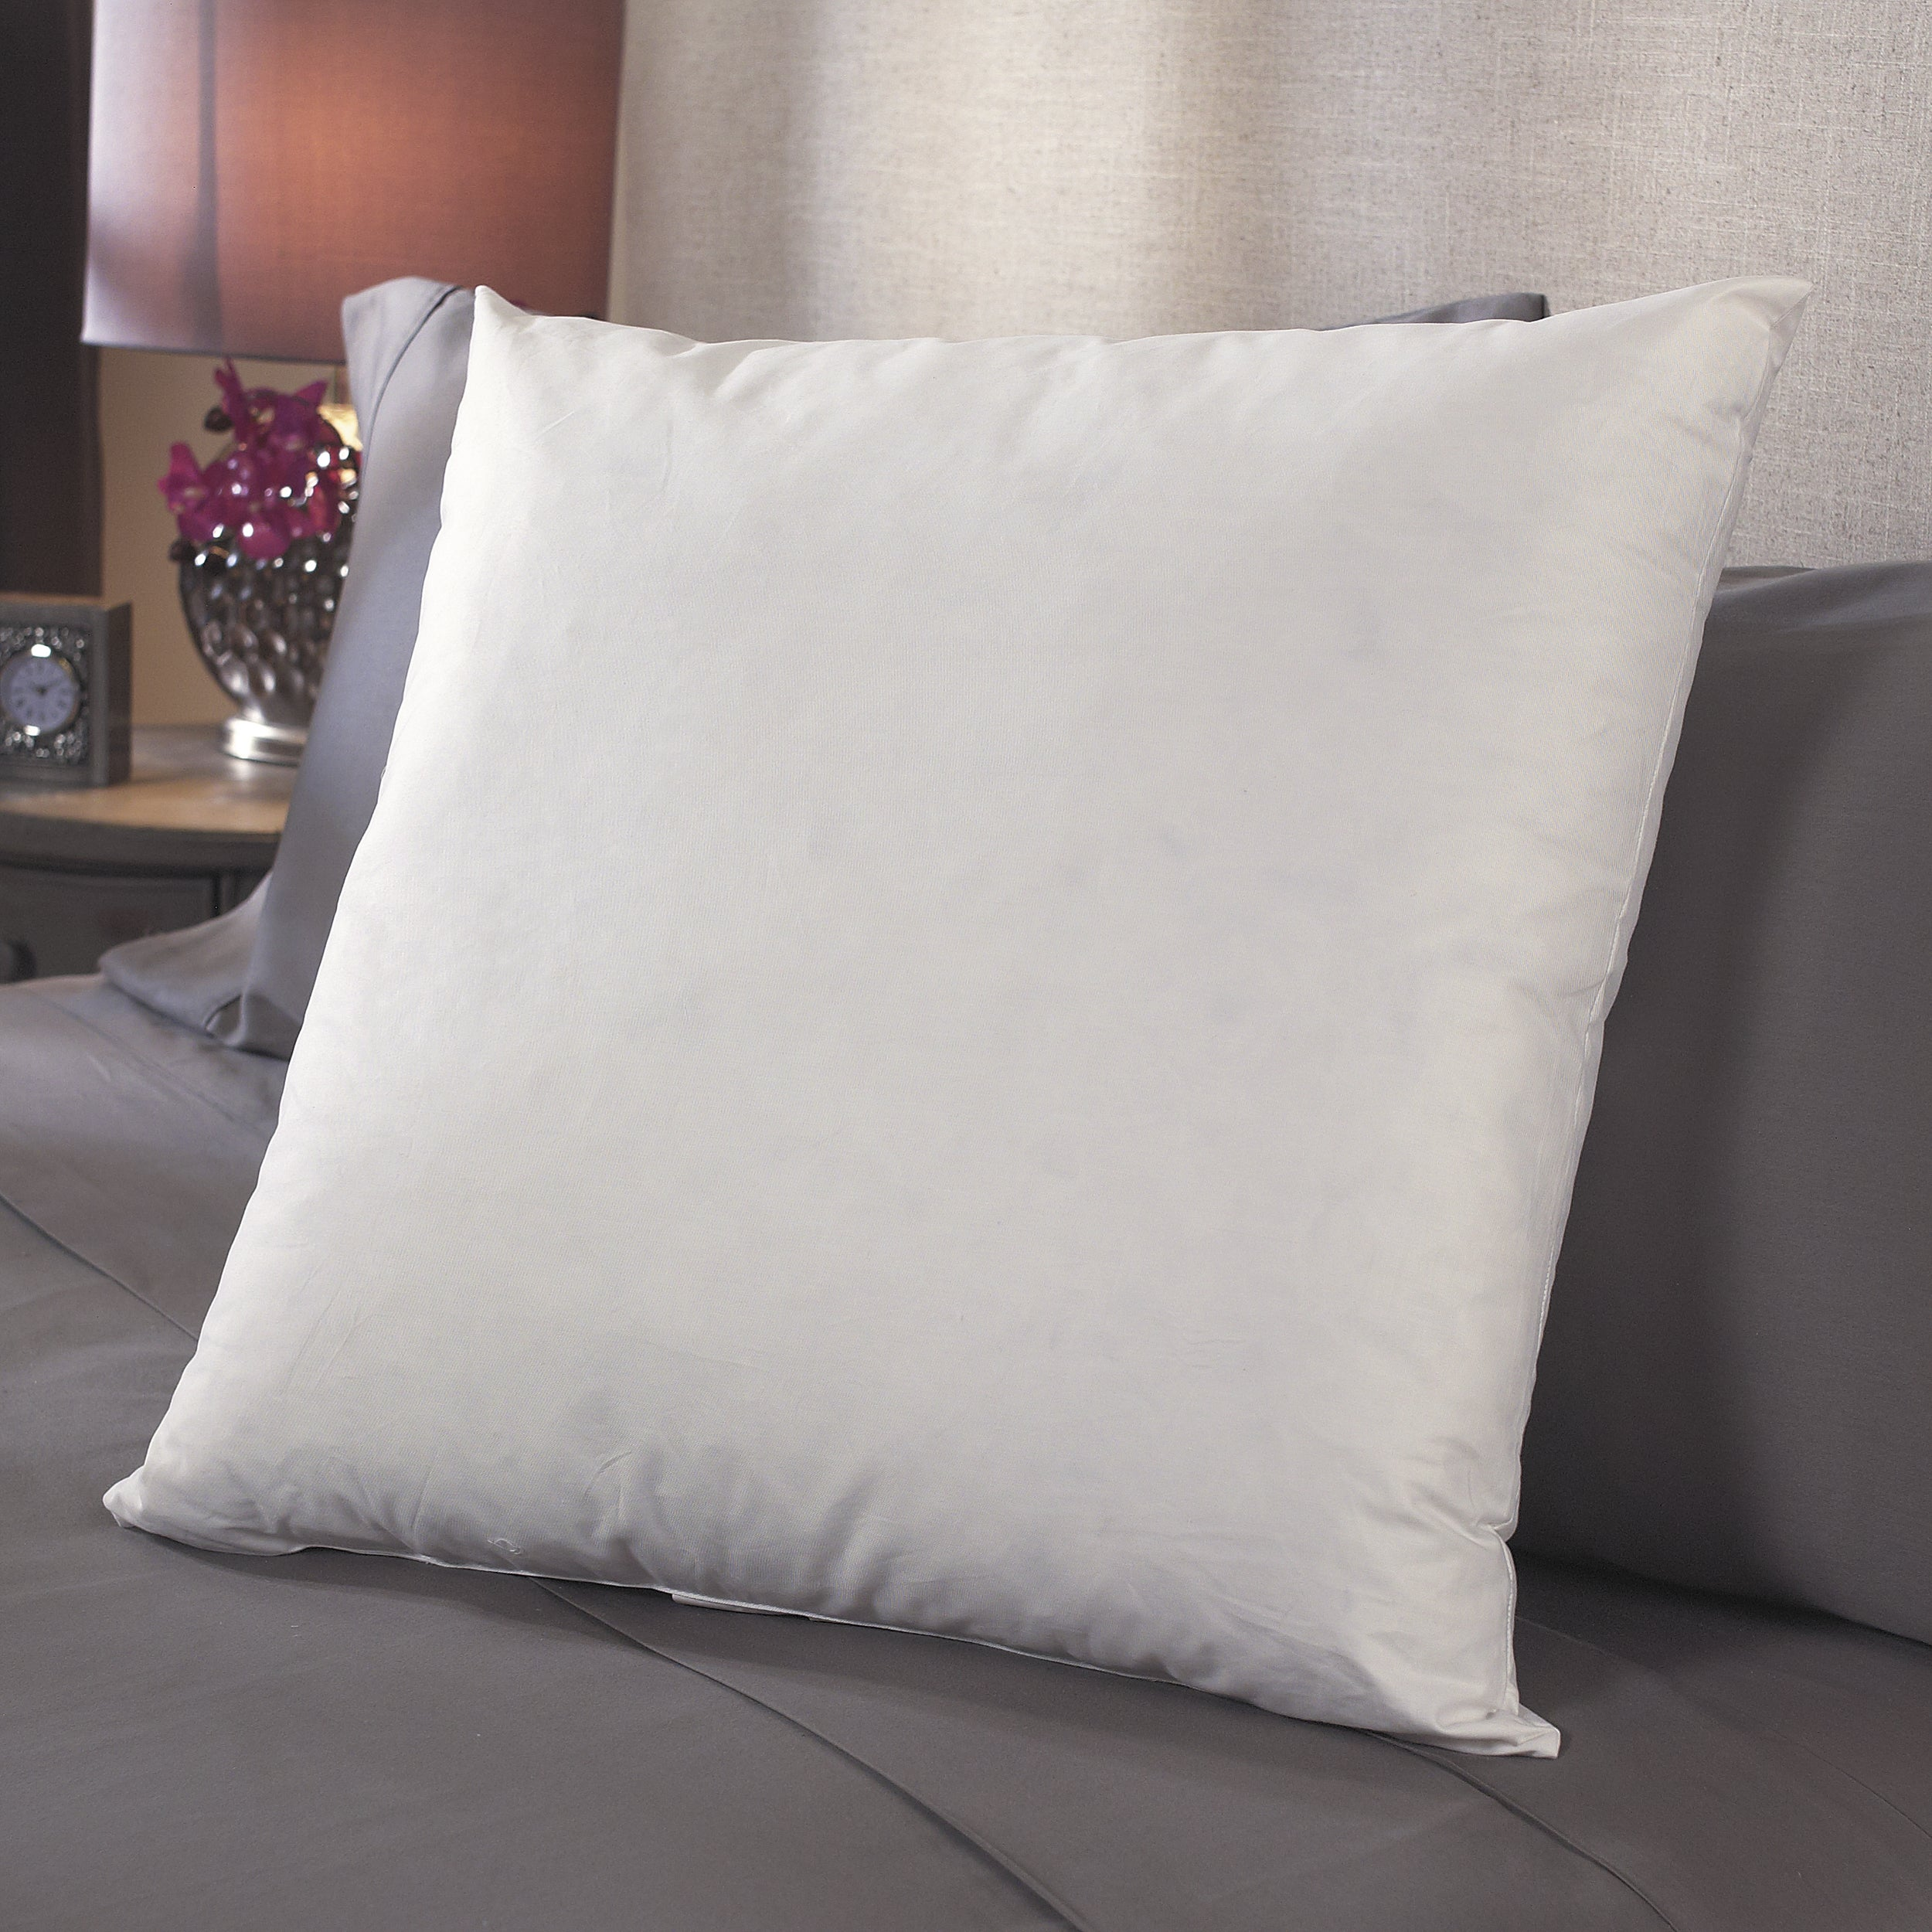 Luxury White Goose Decorative/ Accent Pillow Inserts (Set of 2)